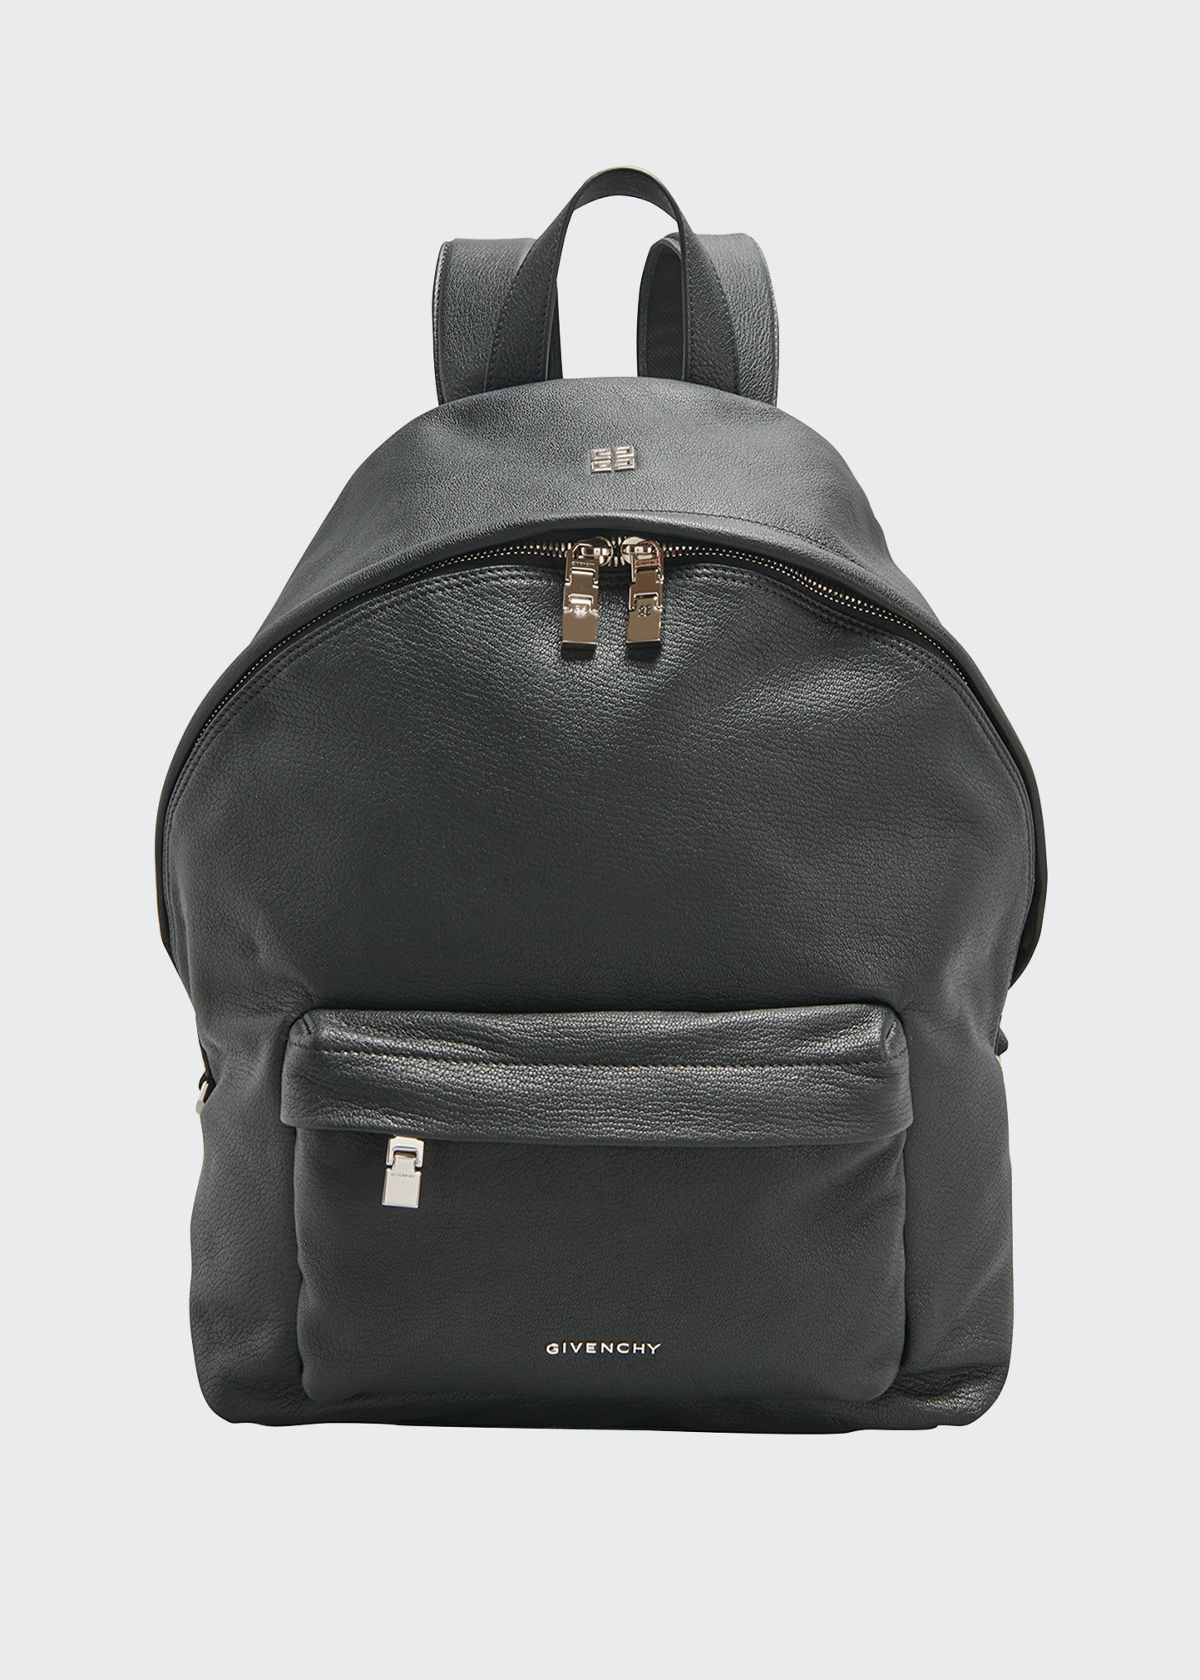 Givenchy MEN'S DOUBLE U LEATHER BACKPACK